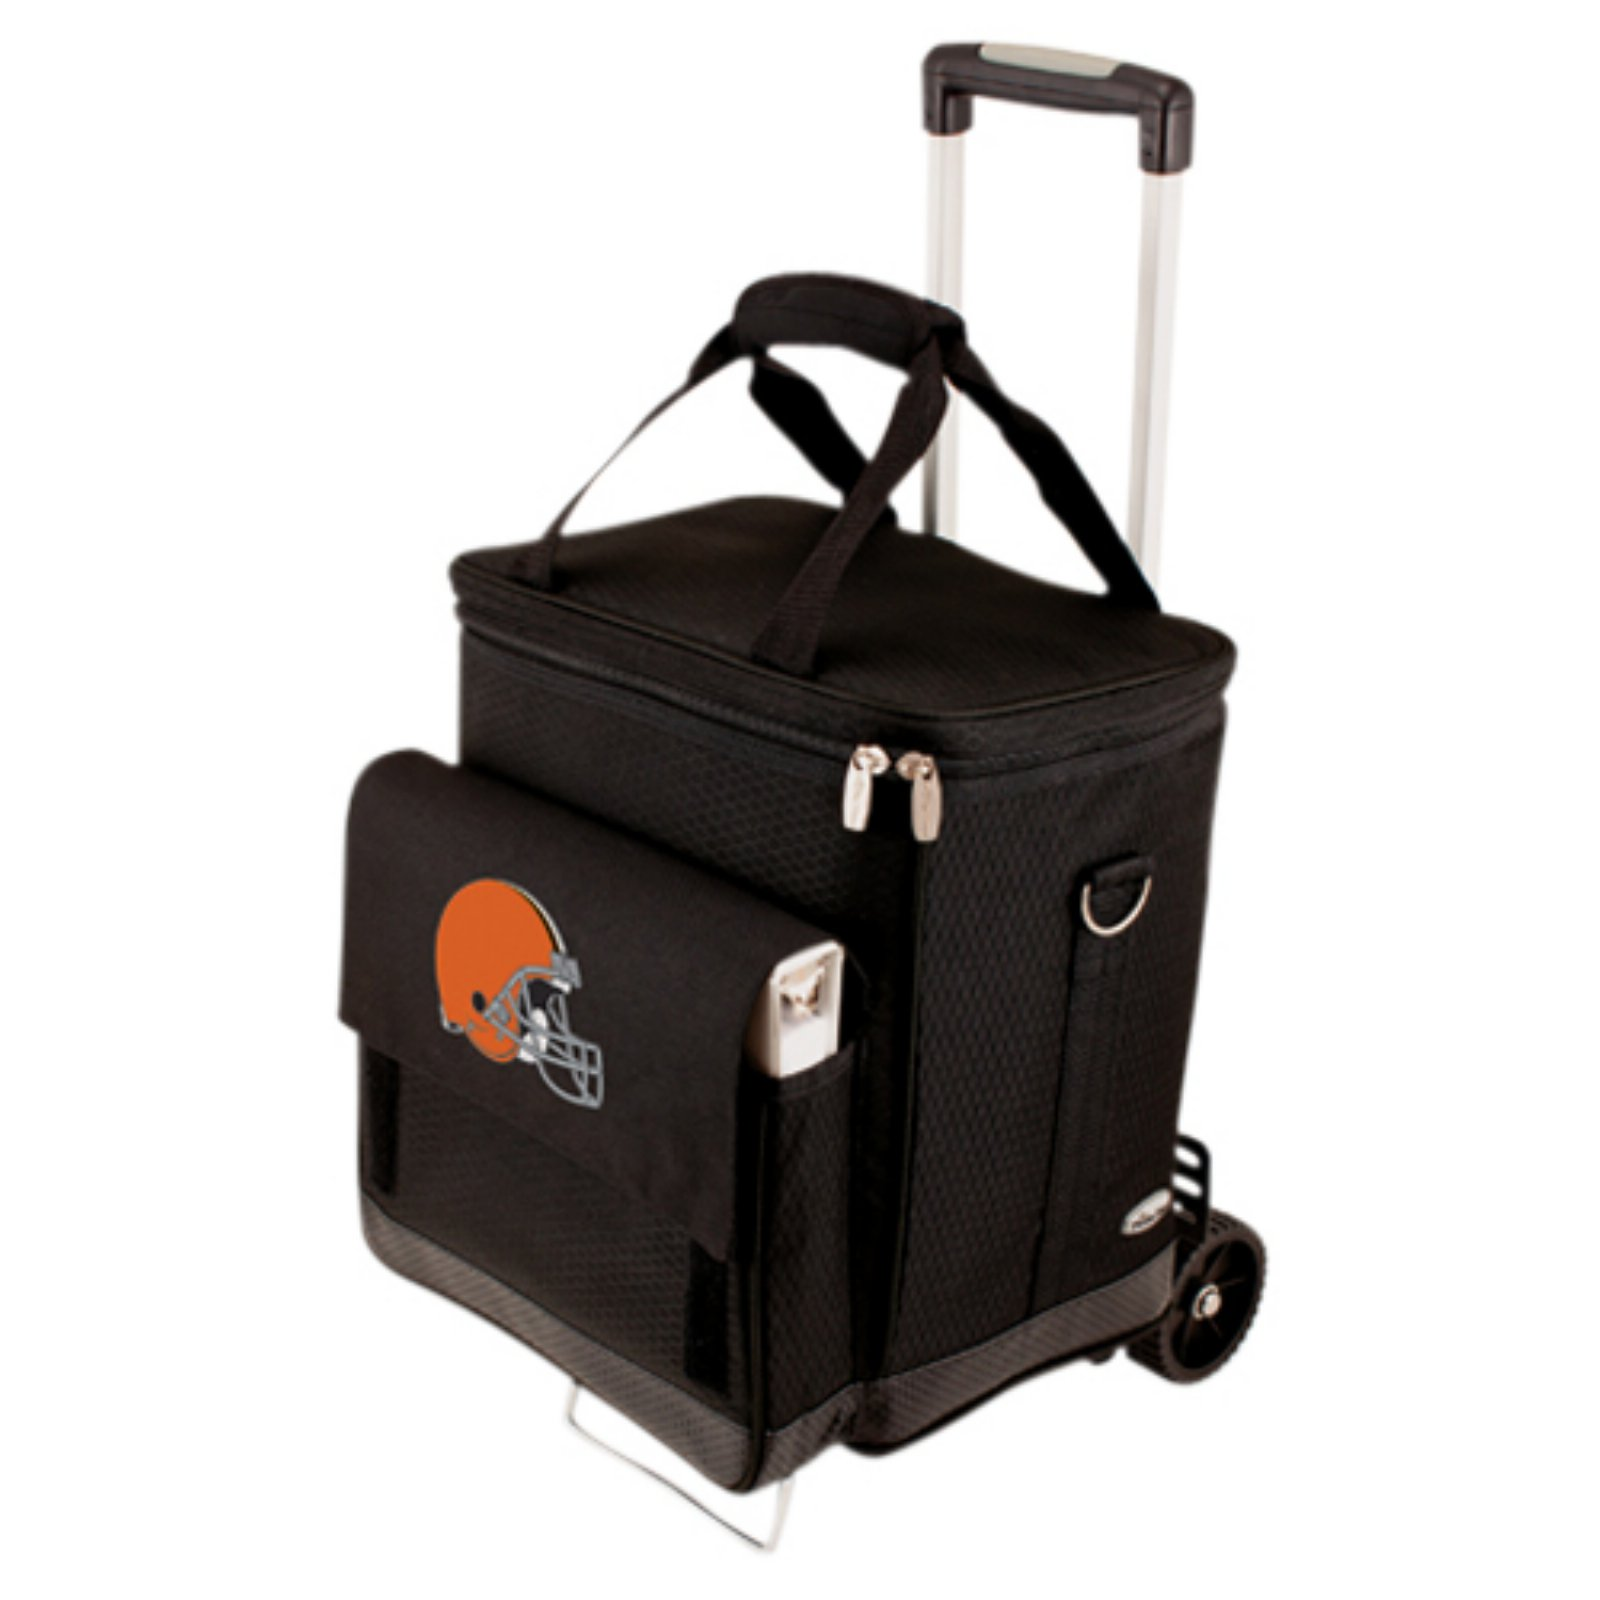 Picnic Time Cellar with Trolley, Black Cleveland Browns Digital Print